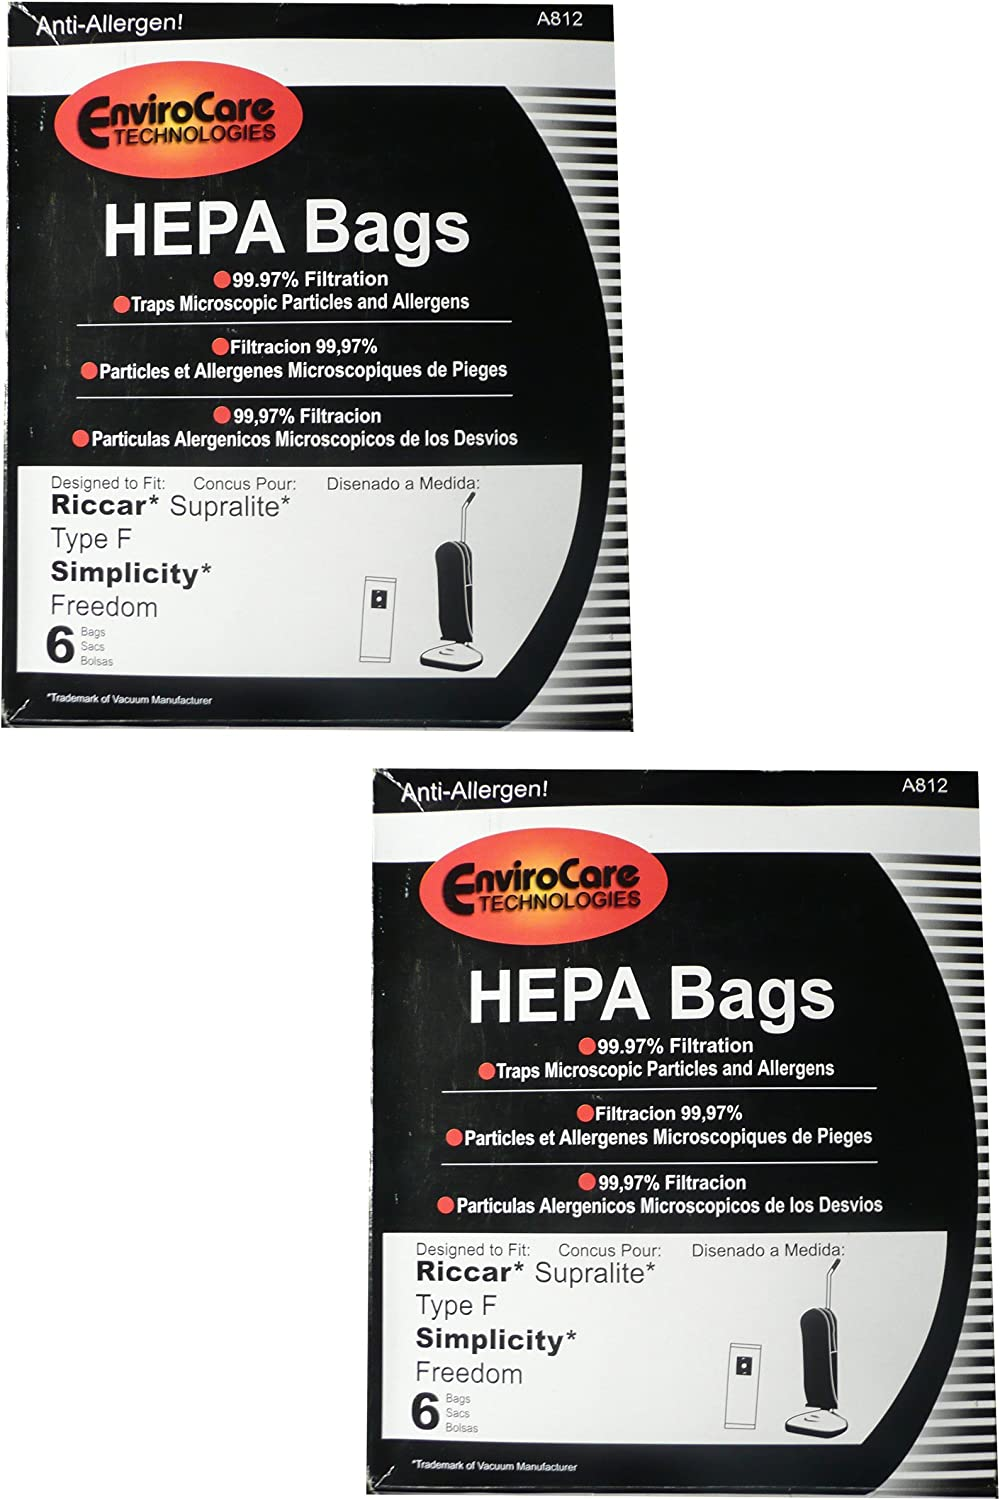 12 Riccar HEPA Type F Vacuum Bags, Simplicity, Freedom, Supralite, Canister Vacuum Cleaners, RSLH-6, SF-6, RSL1, RSL1A, RSL1AC, RSL3C, RSL2, RSL3, RSL4, RSL5, RSL5C, SLPLUS, RFH-6, F3500